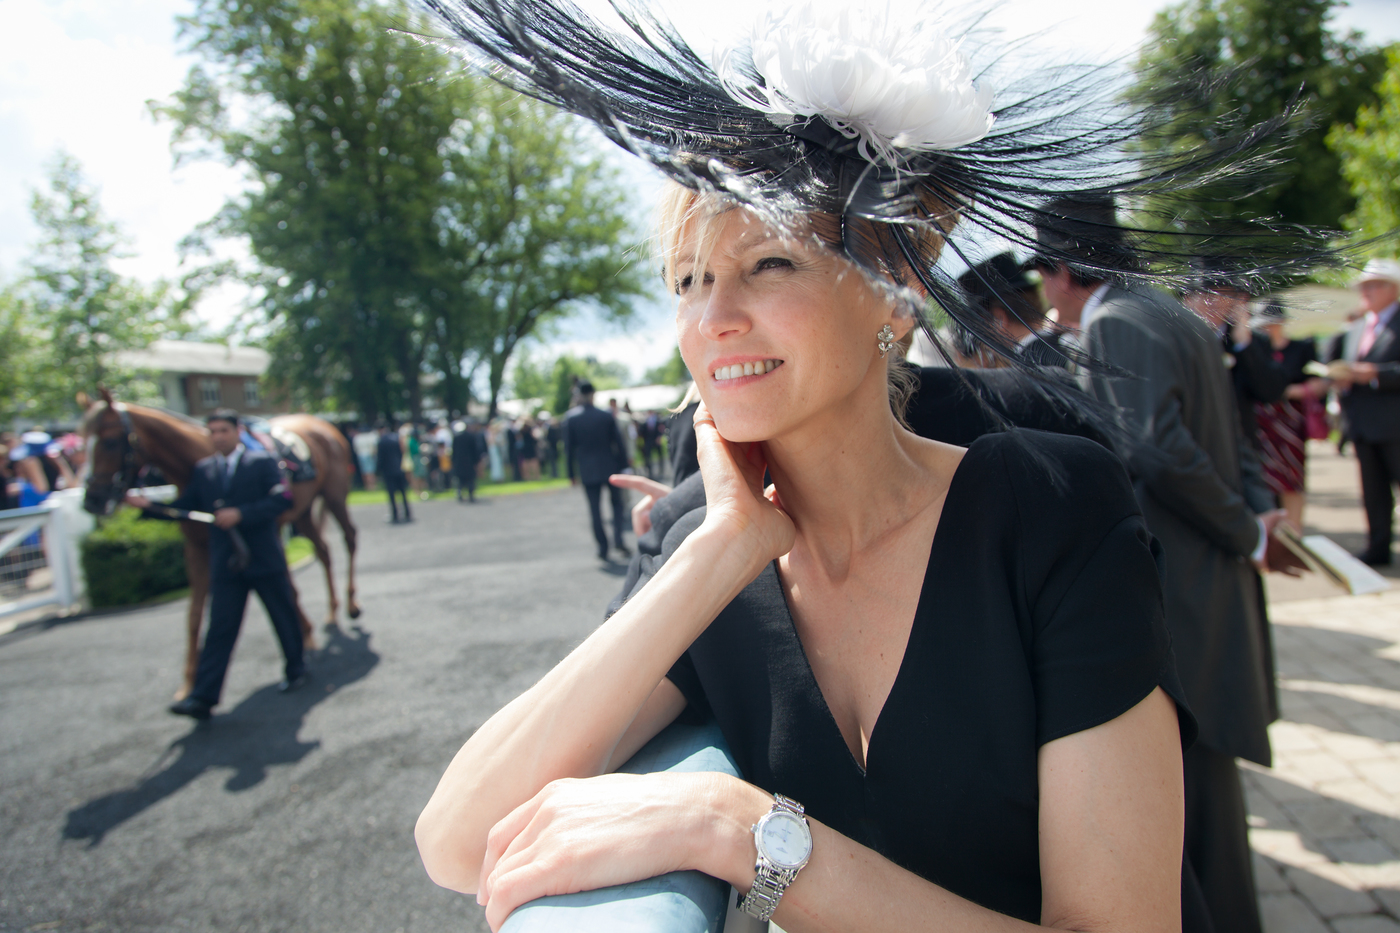 Longines Flat Racing Event: Royal Ascot 2012 - An elegant day at the races with Longines Ambassador of Elegance Ingeborga Dapkunaite 5